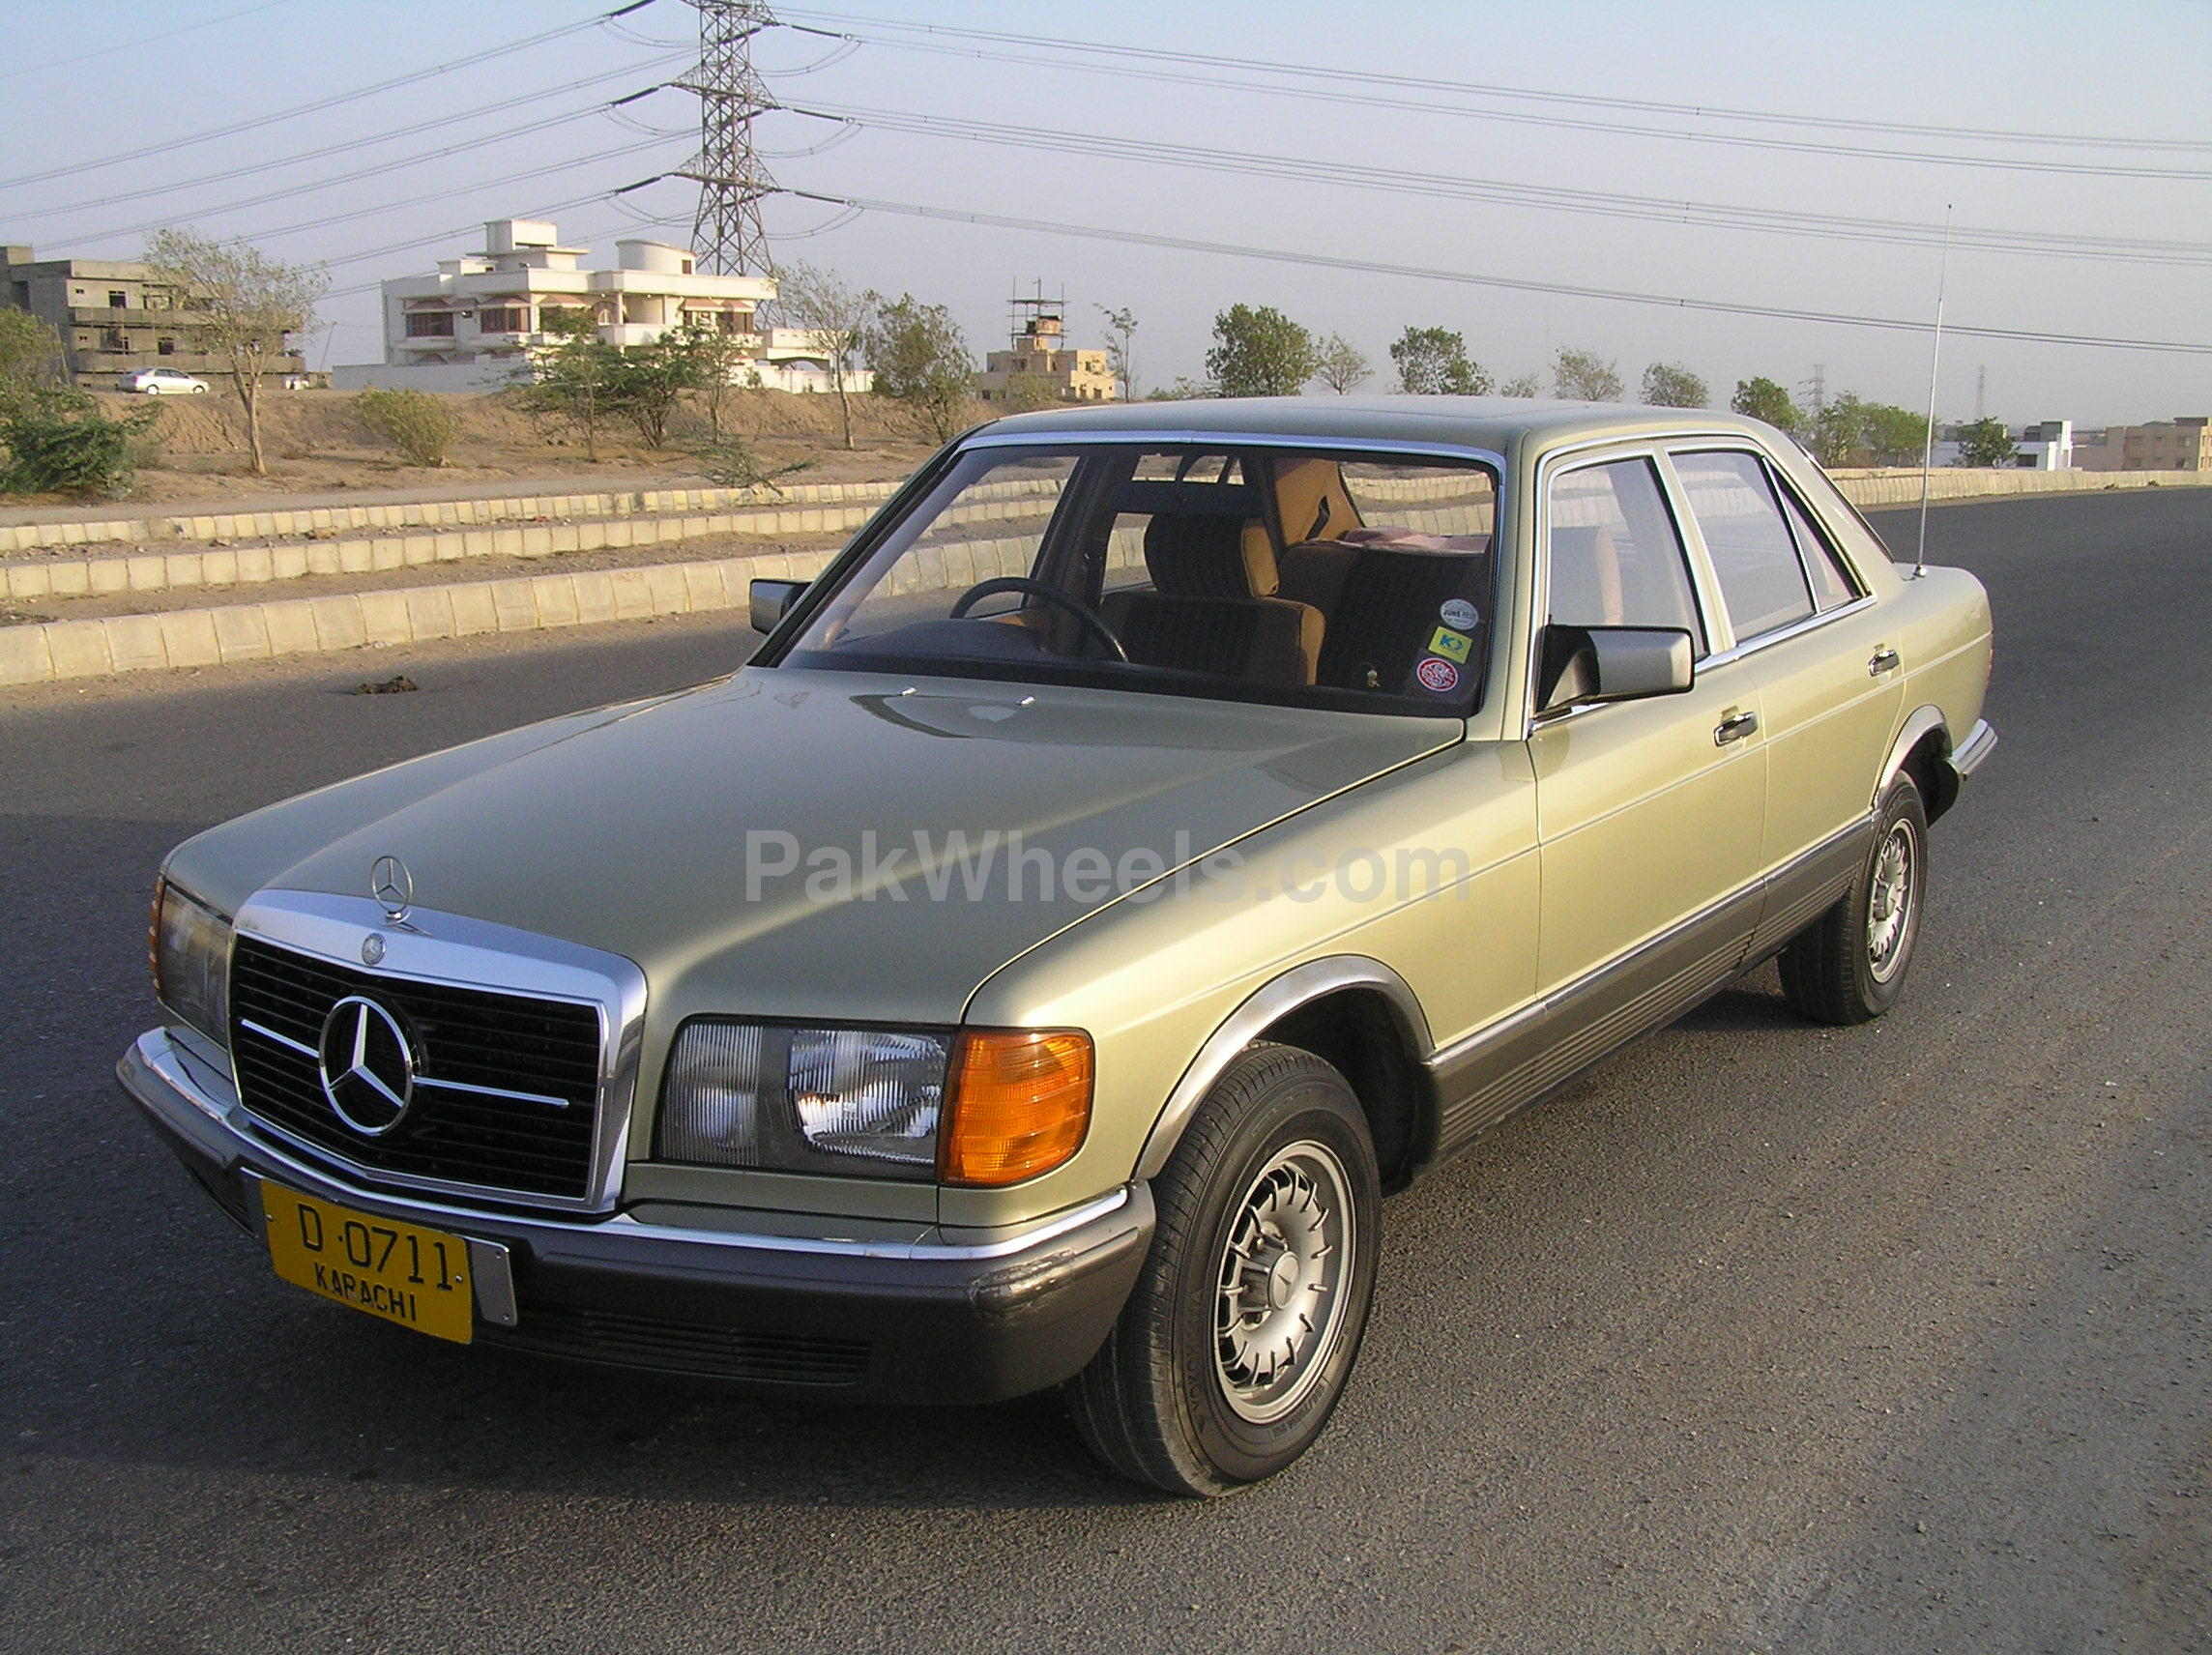 Mercedes benz s class 1982 of kamran alam 27696 for Mercedes benz membership